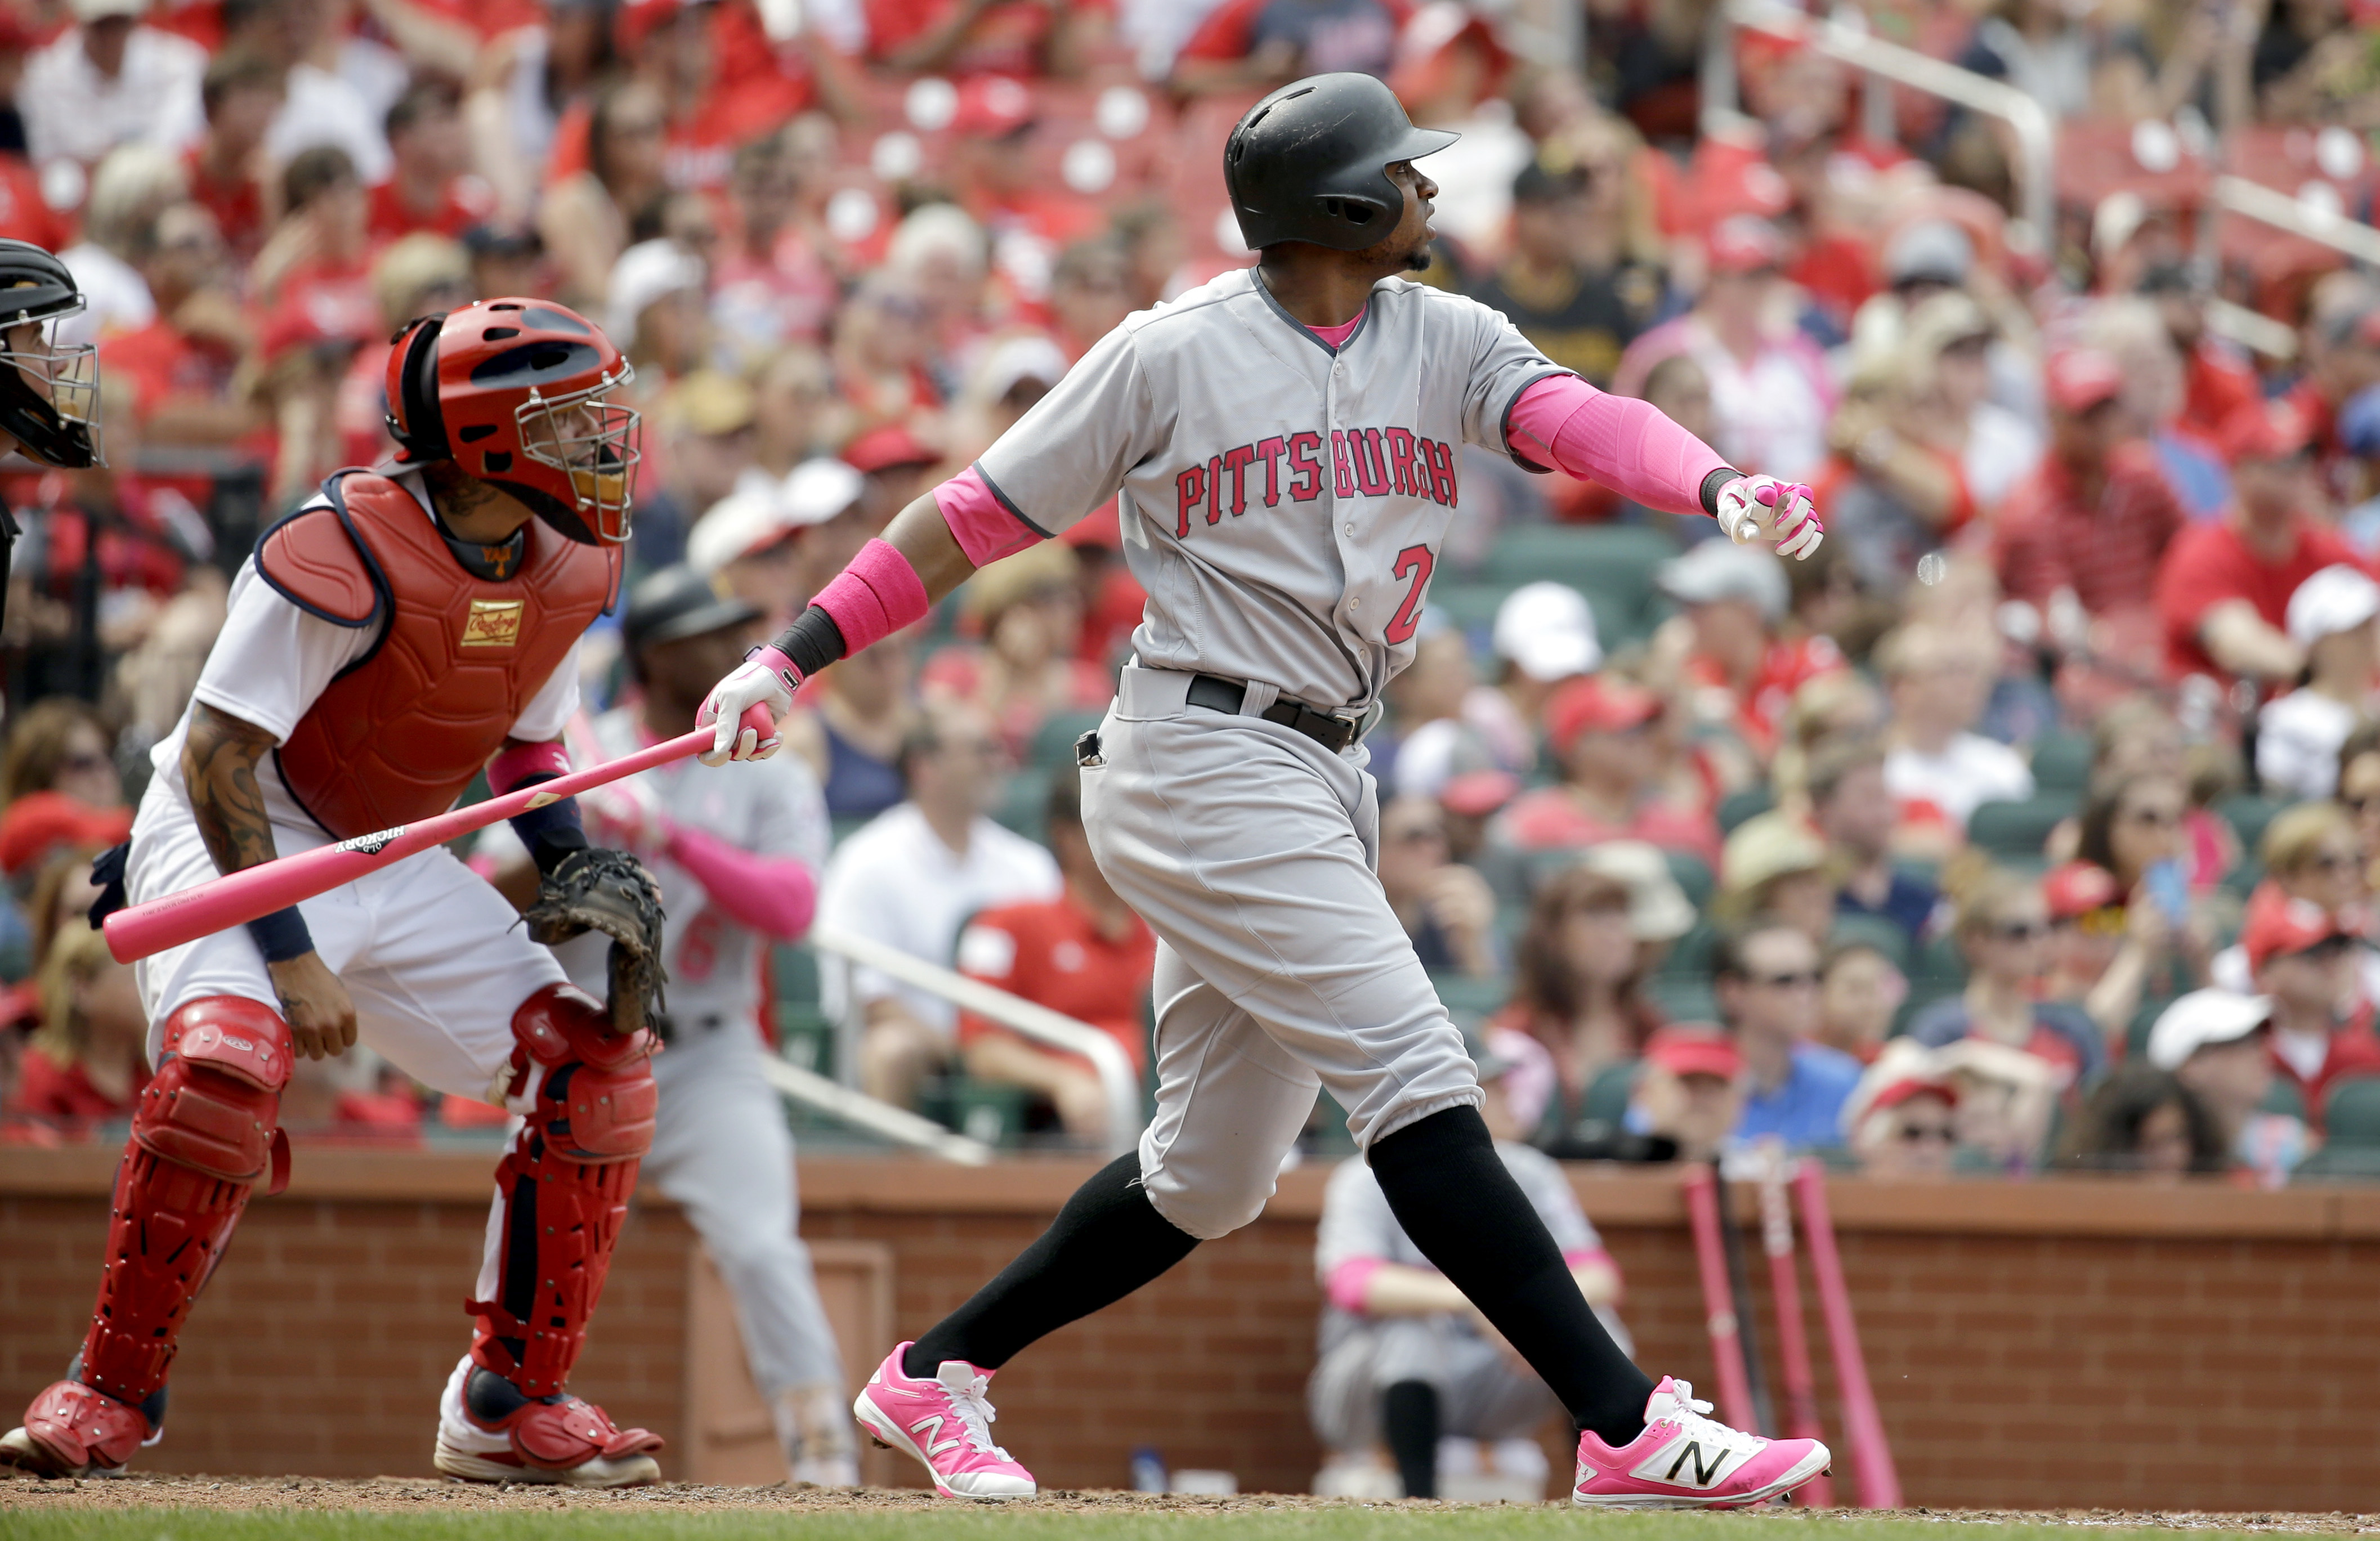 Pittsburgh Pirates' Gregory Polanco, right, and St. Louis Cardinals catcher Yadier Molina watch Polanco's three-run home run during the seventh inning of a baseball game Sunday, May 8, 2016, in St. Louis. (AP Photo/Jeff Roberson)